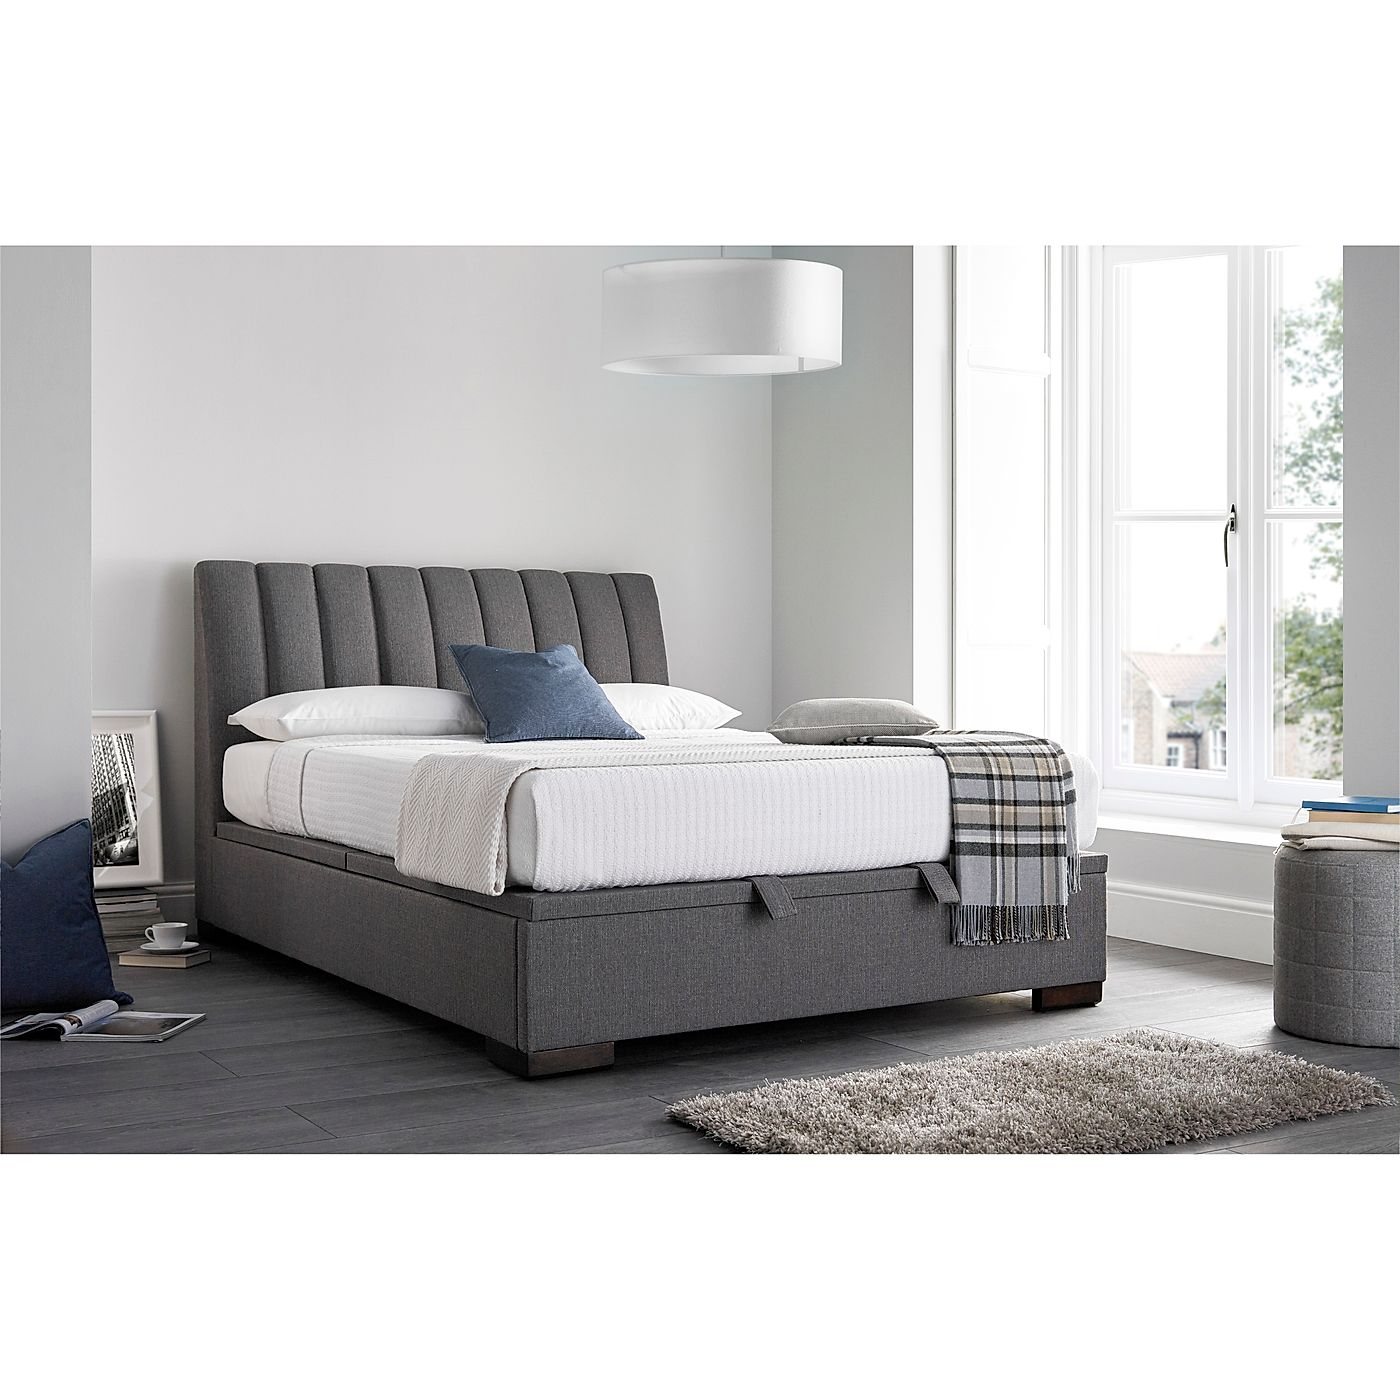 4fa87f7380c0 Kaydian Lanchester Ottoman Storage Bed - Double - Grey Only £680.00 ...